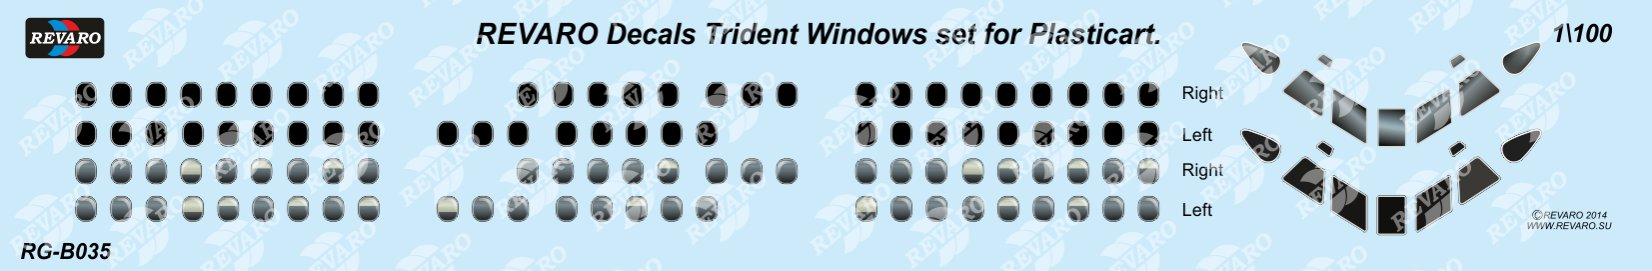 декаль на Trident, revaro, реваро decal windows